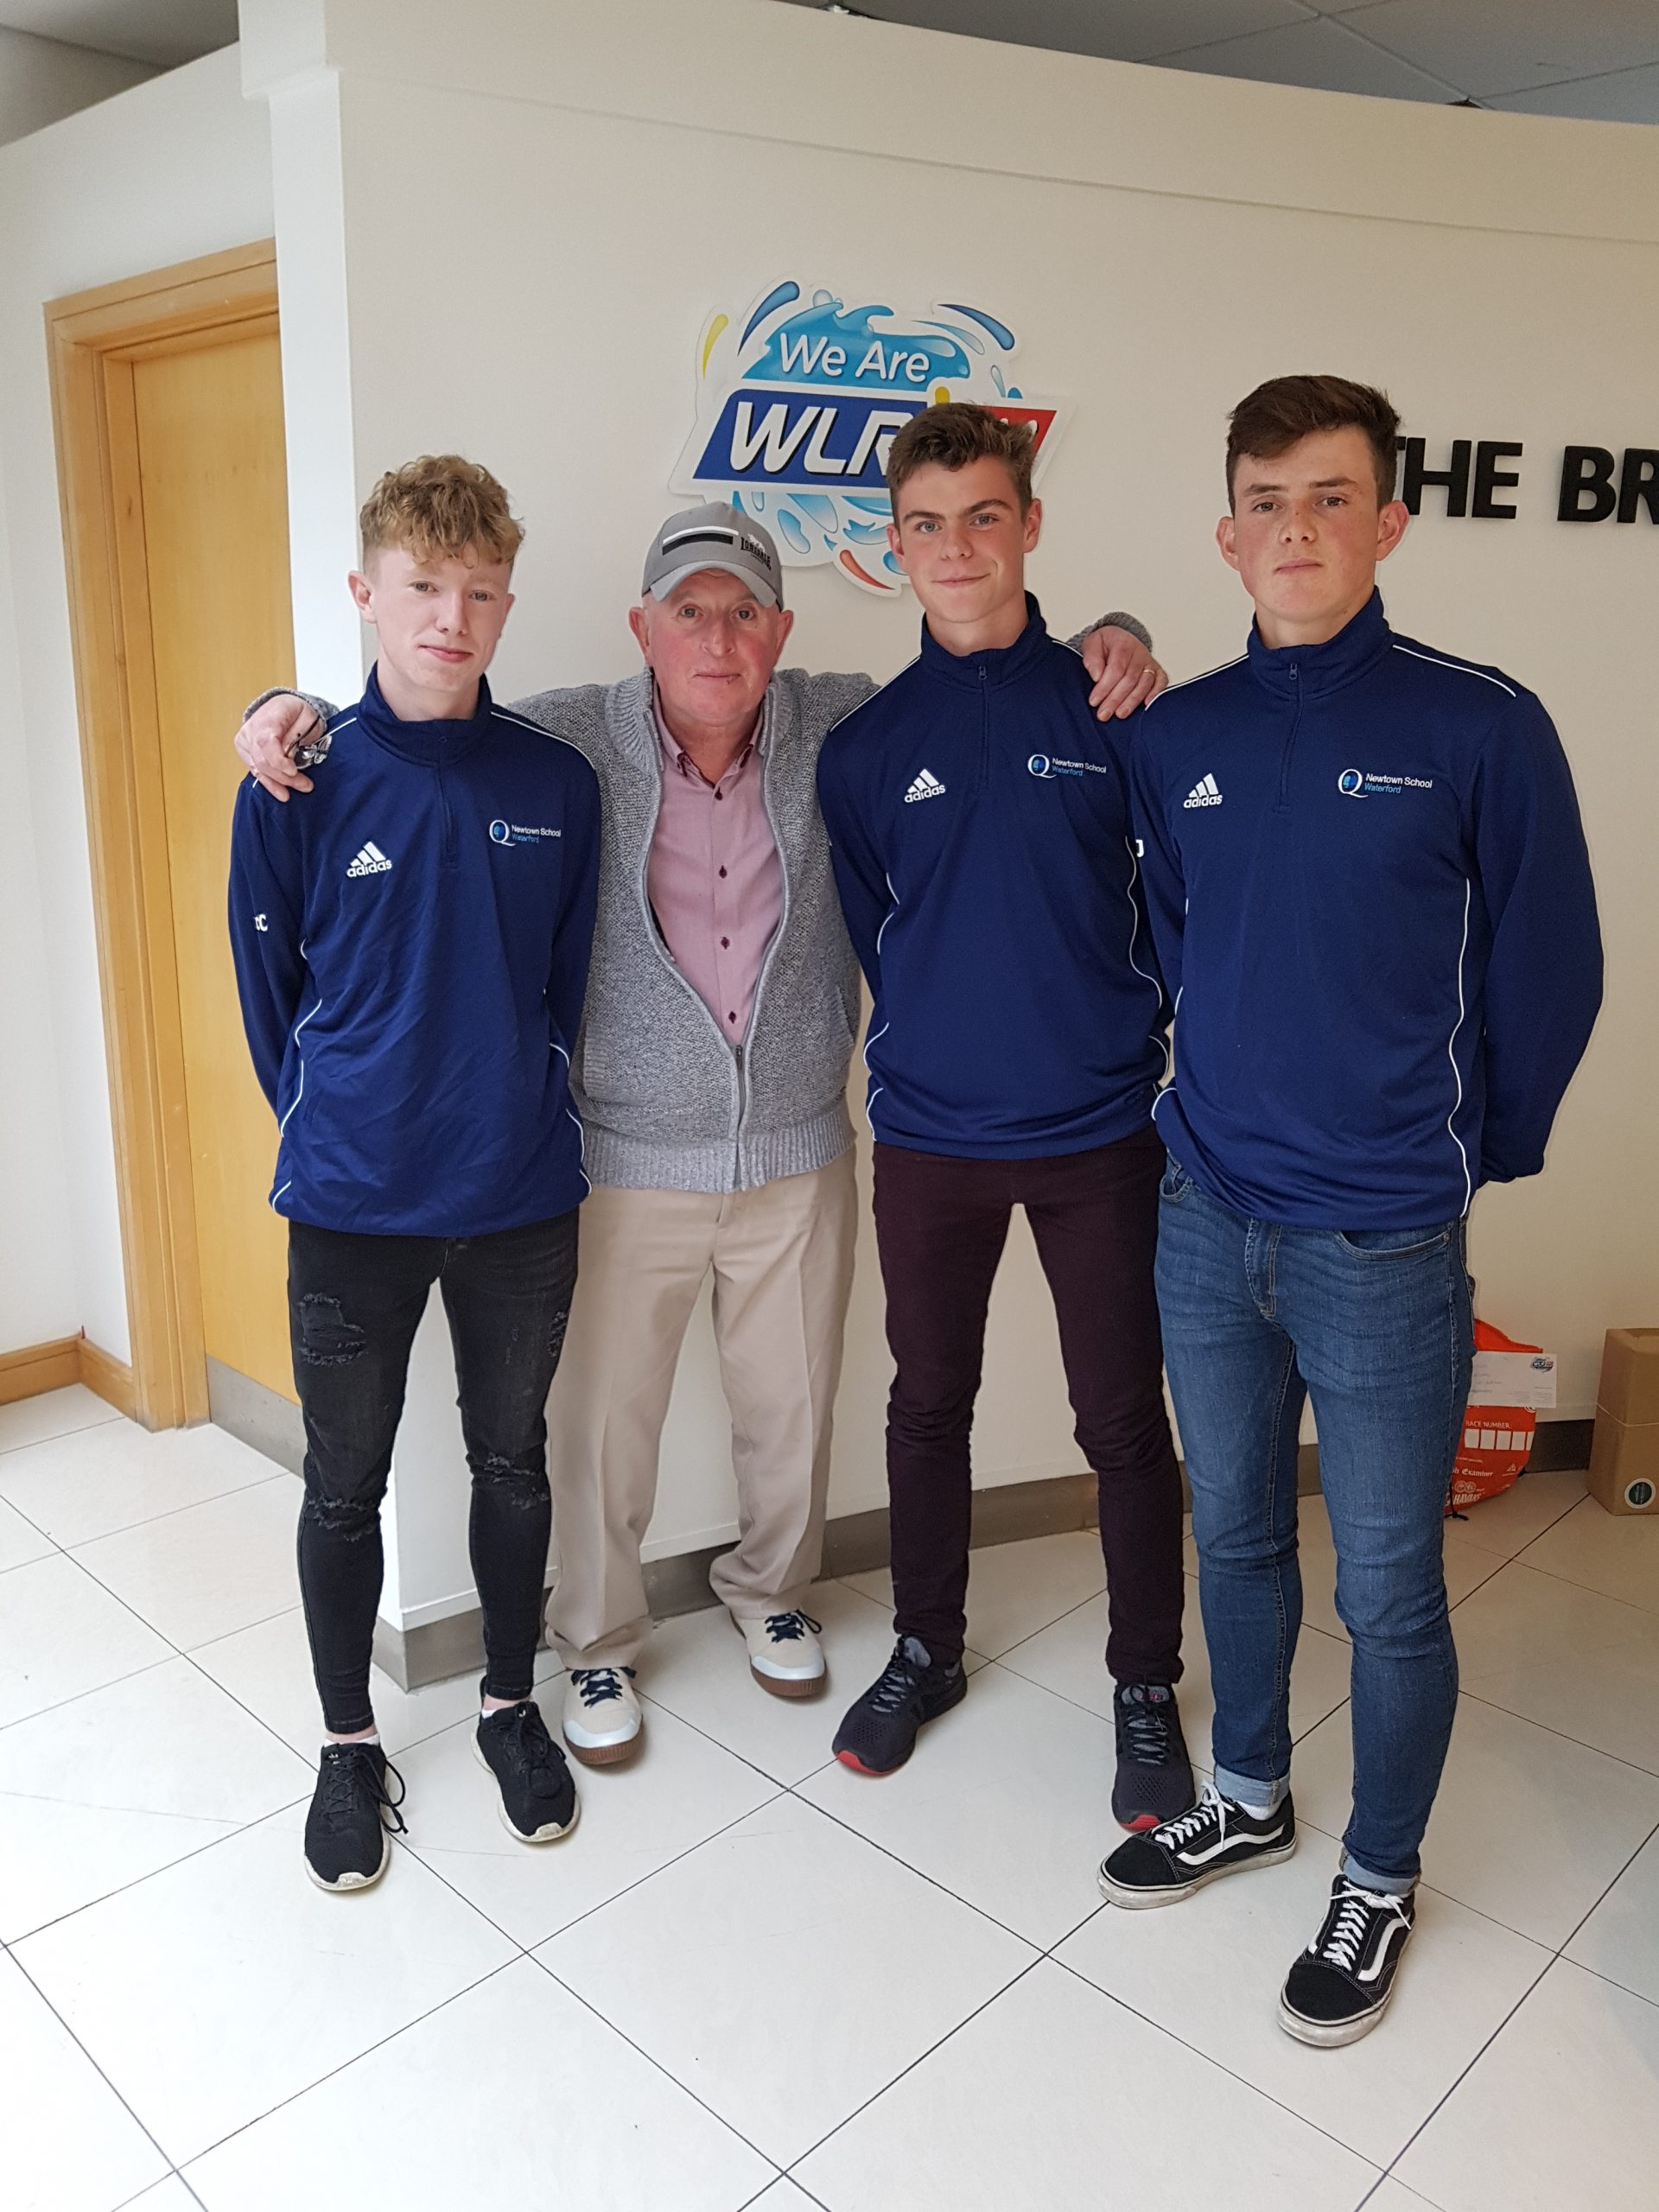 Keane on Sport: All Ireland Hockey success for Newtown School, A Waterford man is Irish Masters Athlete of the Year and all the local rugby and soccer news on this weeks episode.